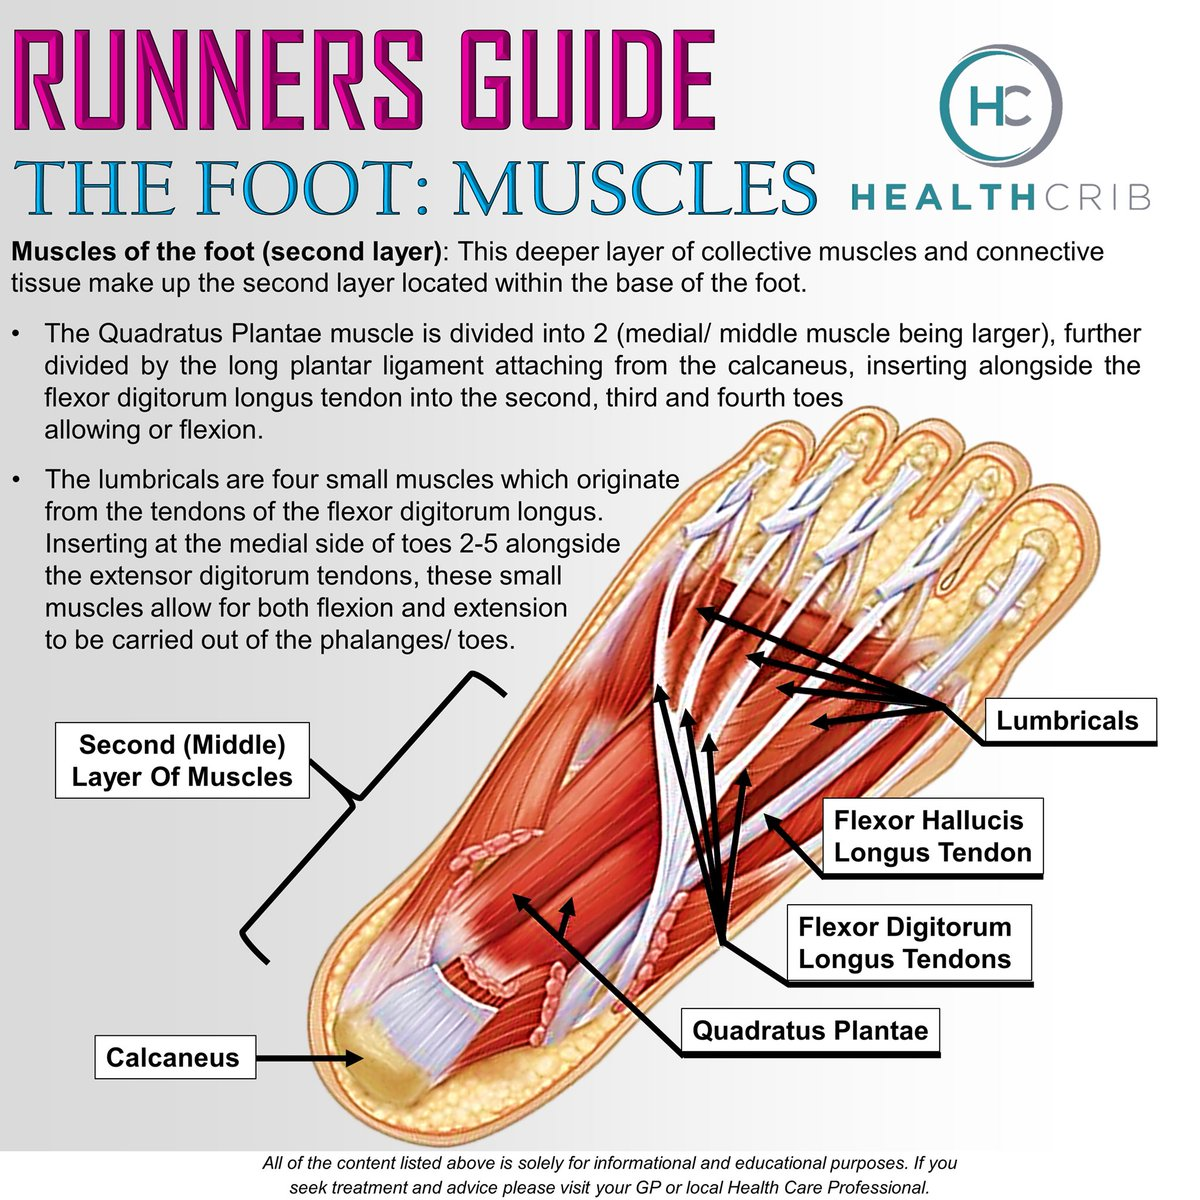 Healthcrib On Twitter The Foot Muscles Distal Bottom Are Made Up Of 3 Layers The Middle Layer Is Formally Made Up Of Connective Tissue This Layer Is Made Up Of 2 Muscles